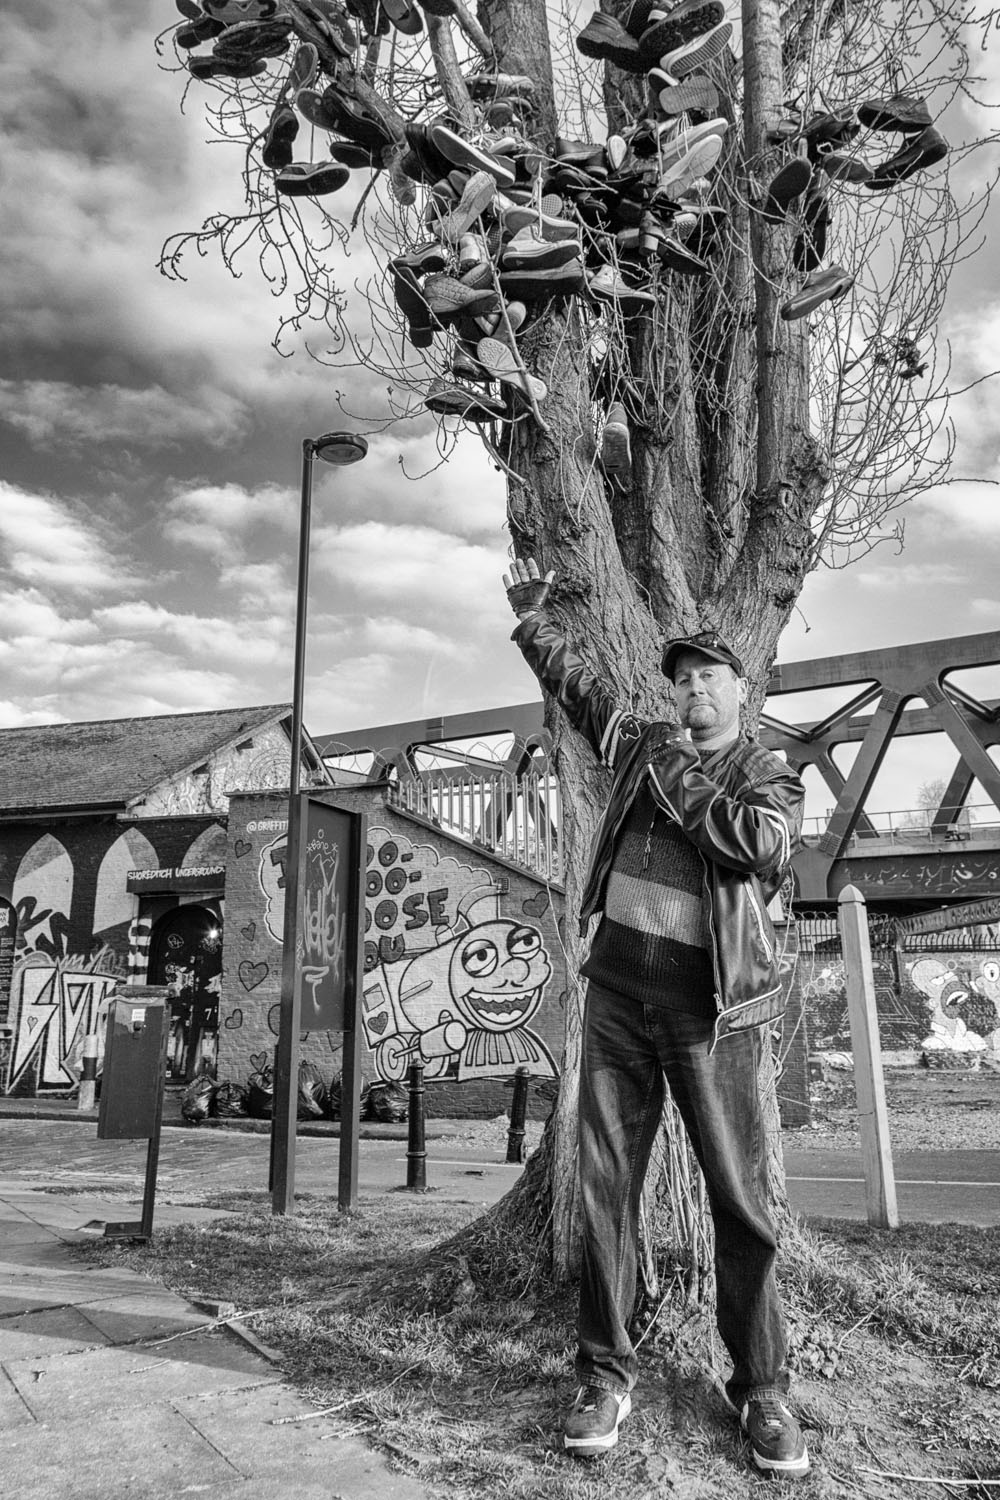 I met this guy on the walk home. He explained how he had collected these shoes from miles around to build his shoe tree. He was happy to get photographed provided I parted with some spare change.